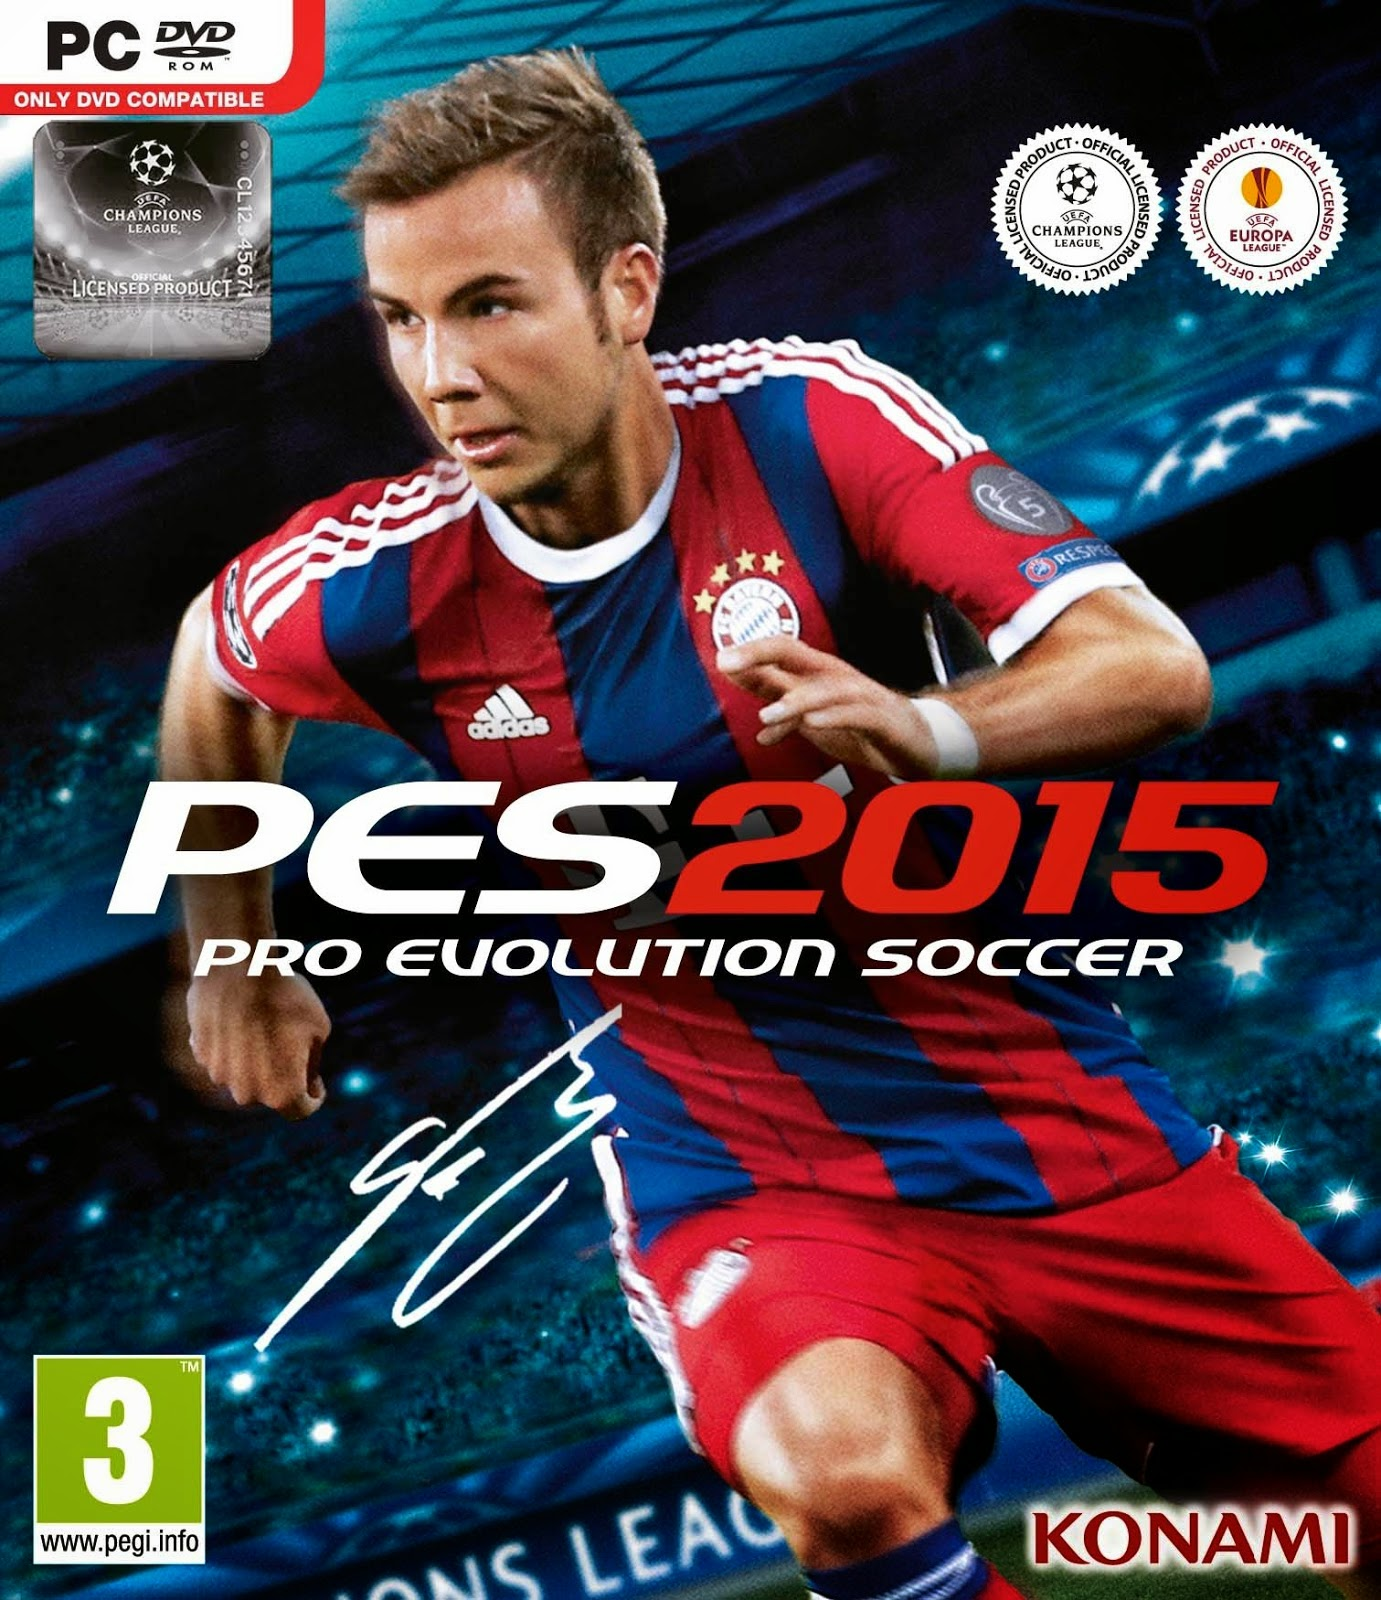 Pro Evolution Soccer (2016) Full Pc Game Version Free Download